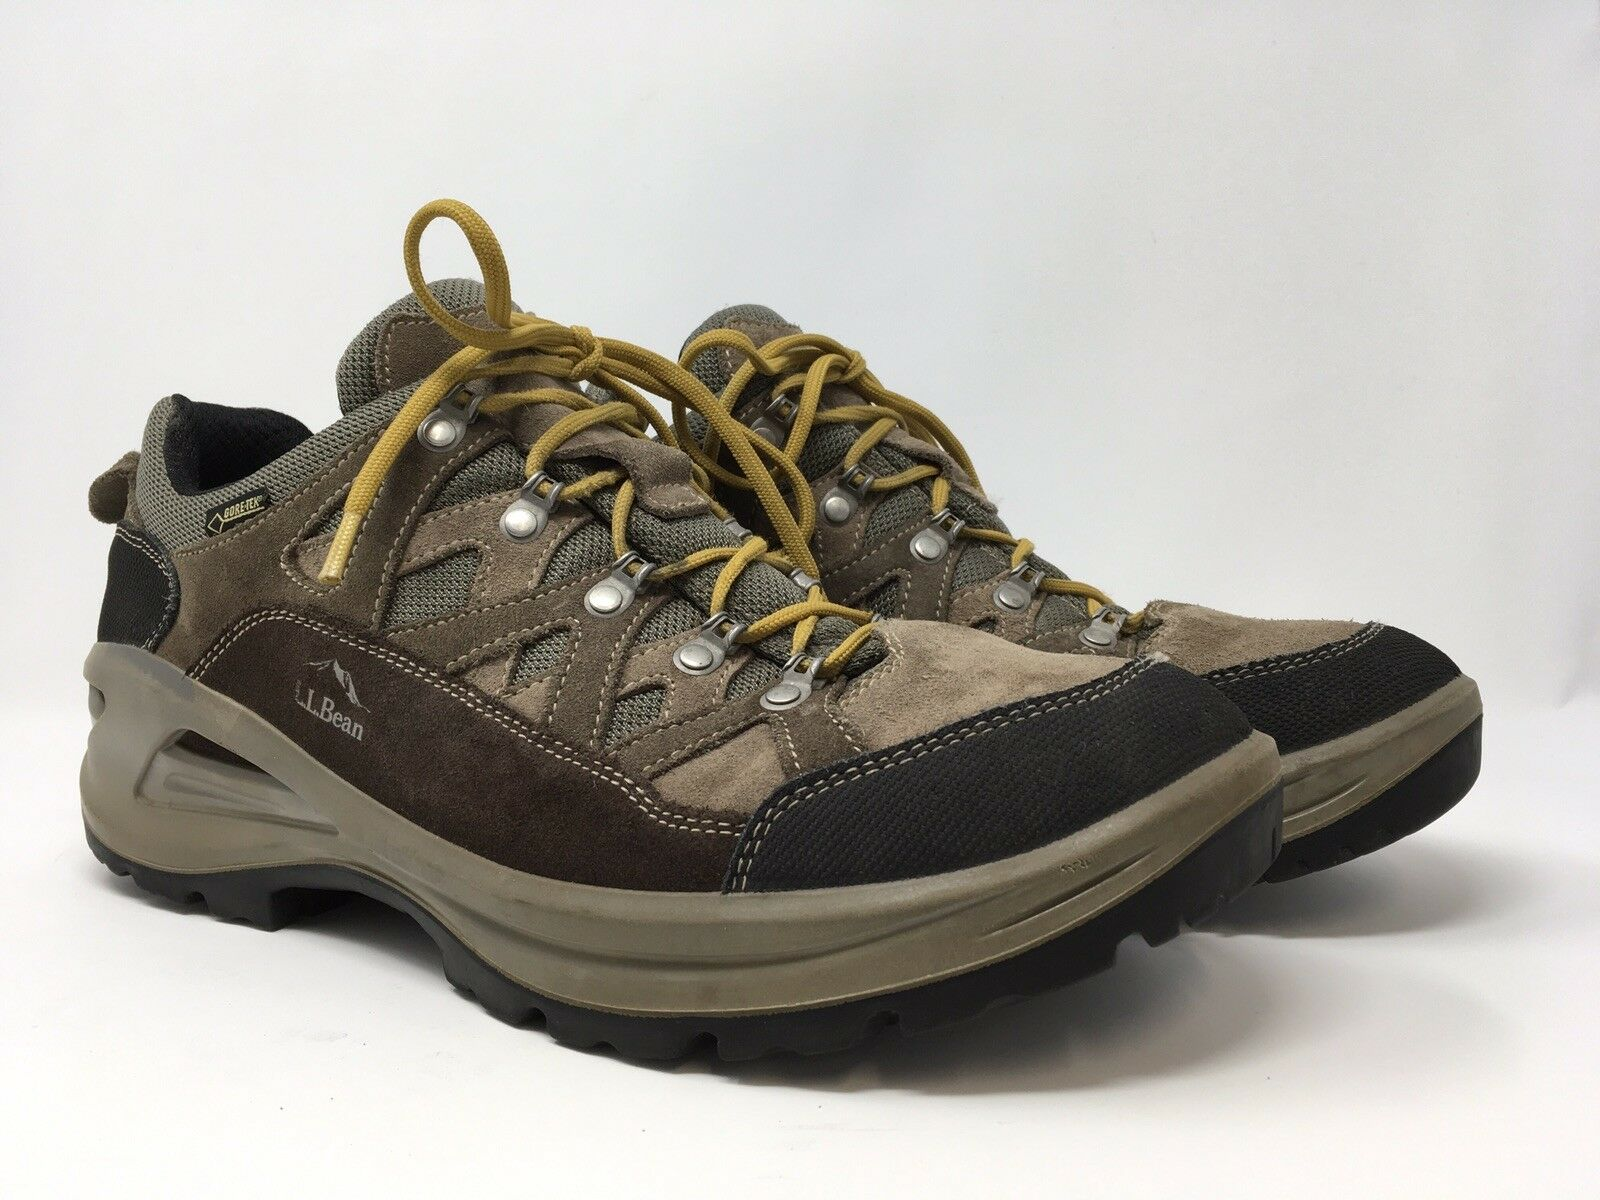 on sale 2b9a4 cf5bc LL Bean Mens shoes Low Lace Up Hiking Sneakers Made in Beige Size 12 M. NIKE  AIR JORDAN ...